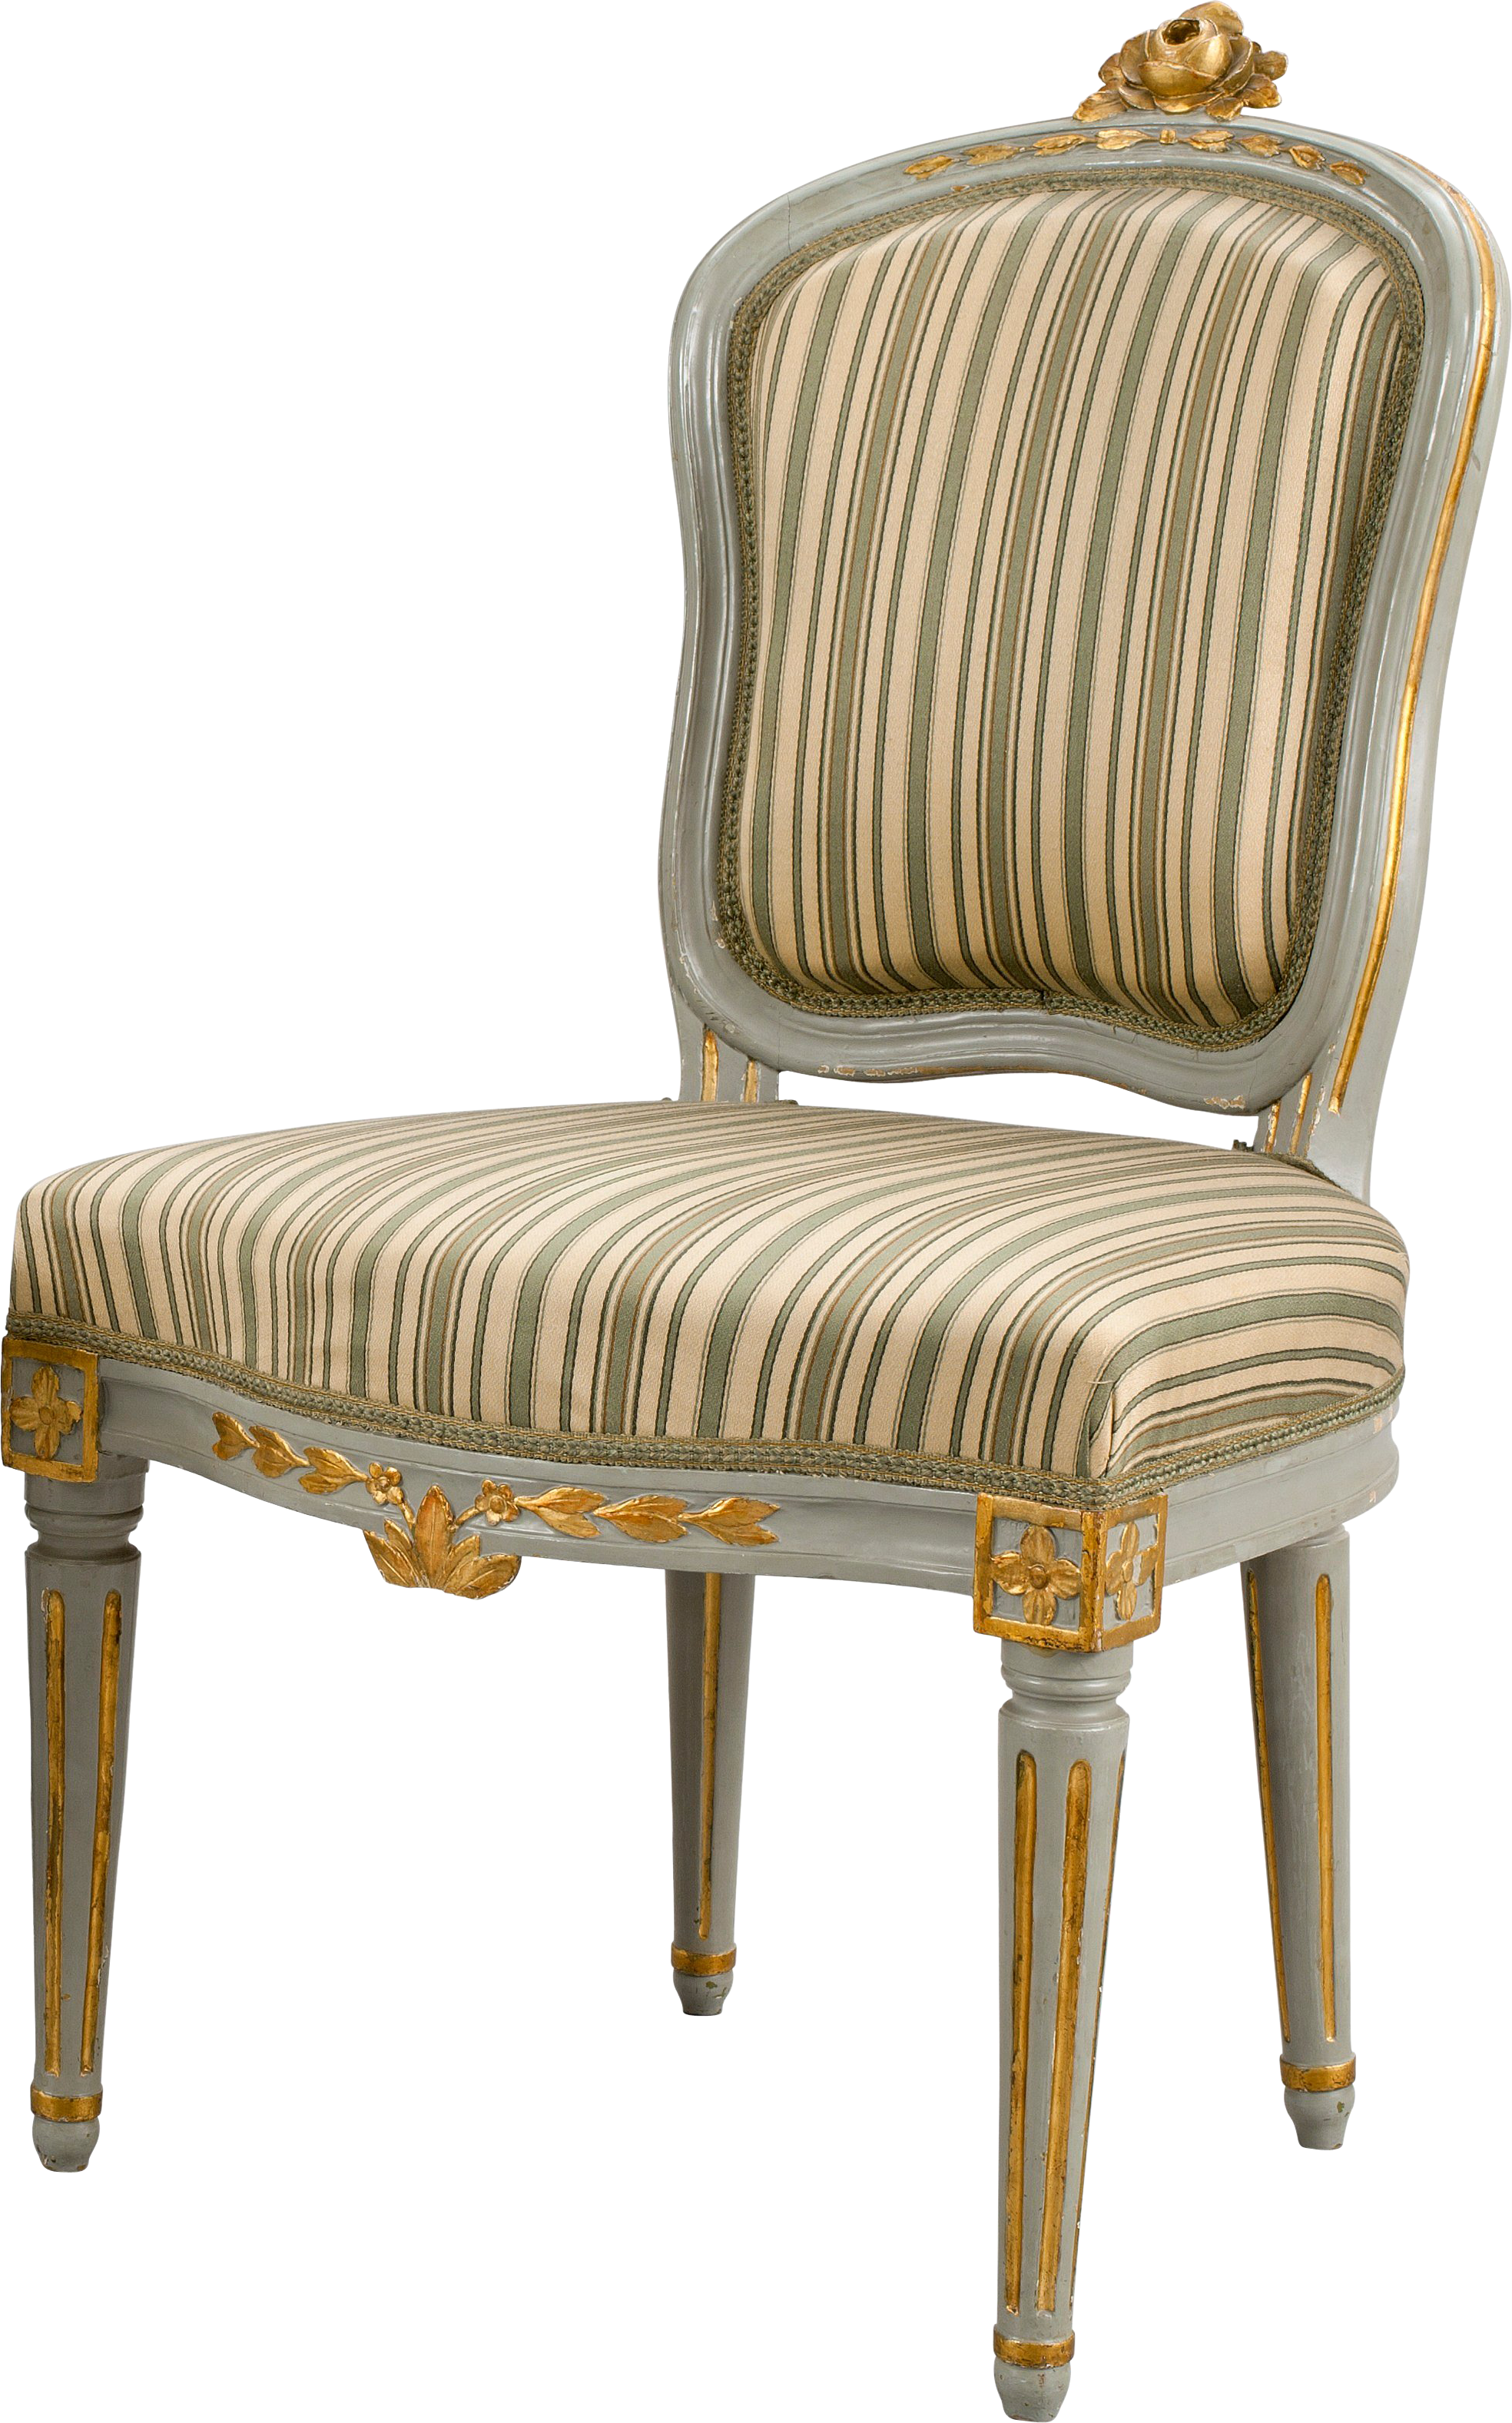 uploads chair chair PNG6854 3